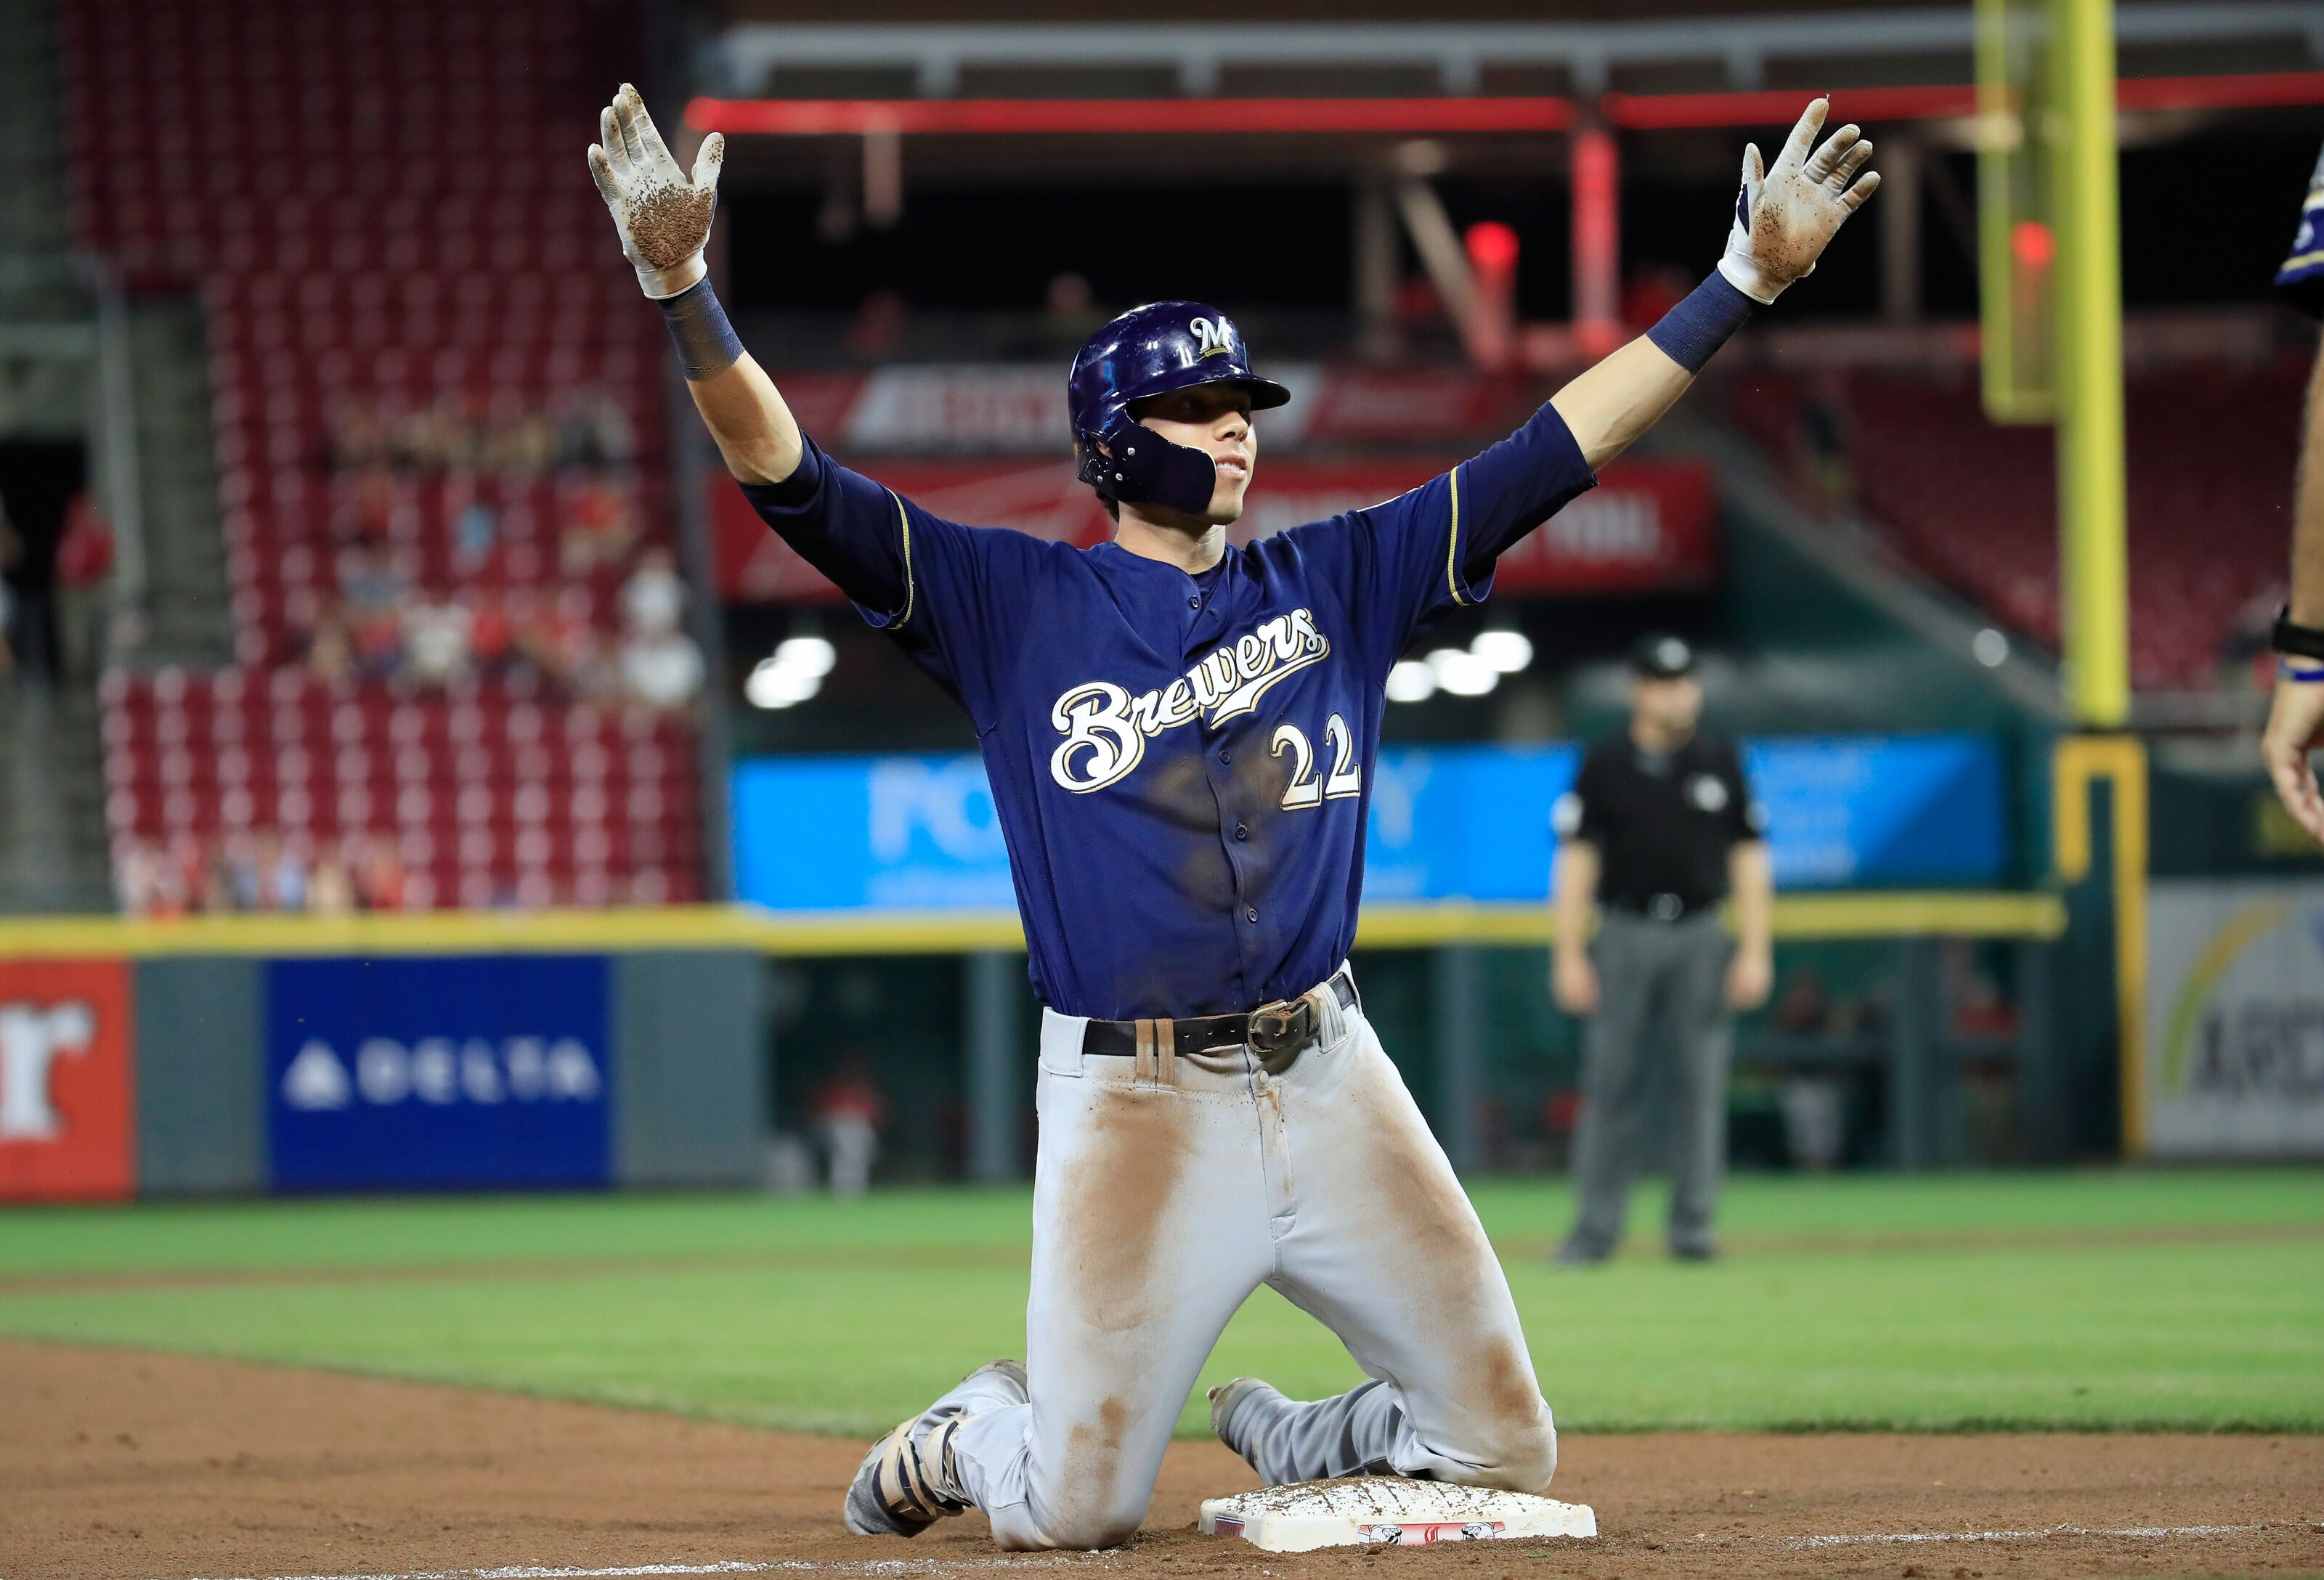 MLB Bets: CINCINNATI, OH - AUGUST 29: Christian Yelich #22 of the Milwaukee Brewers celebrates after hitting a tripple in the 7th inning against the Cincinnati Reds at Great American Ball Park on August 29, 2018 in Cincinnati, Ohio. (Photo by Andy Lyons/Getty Images)